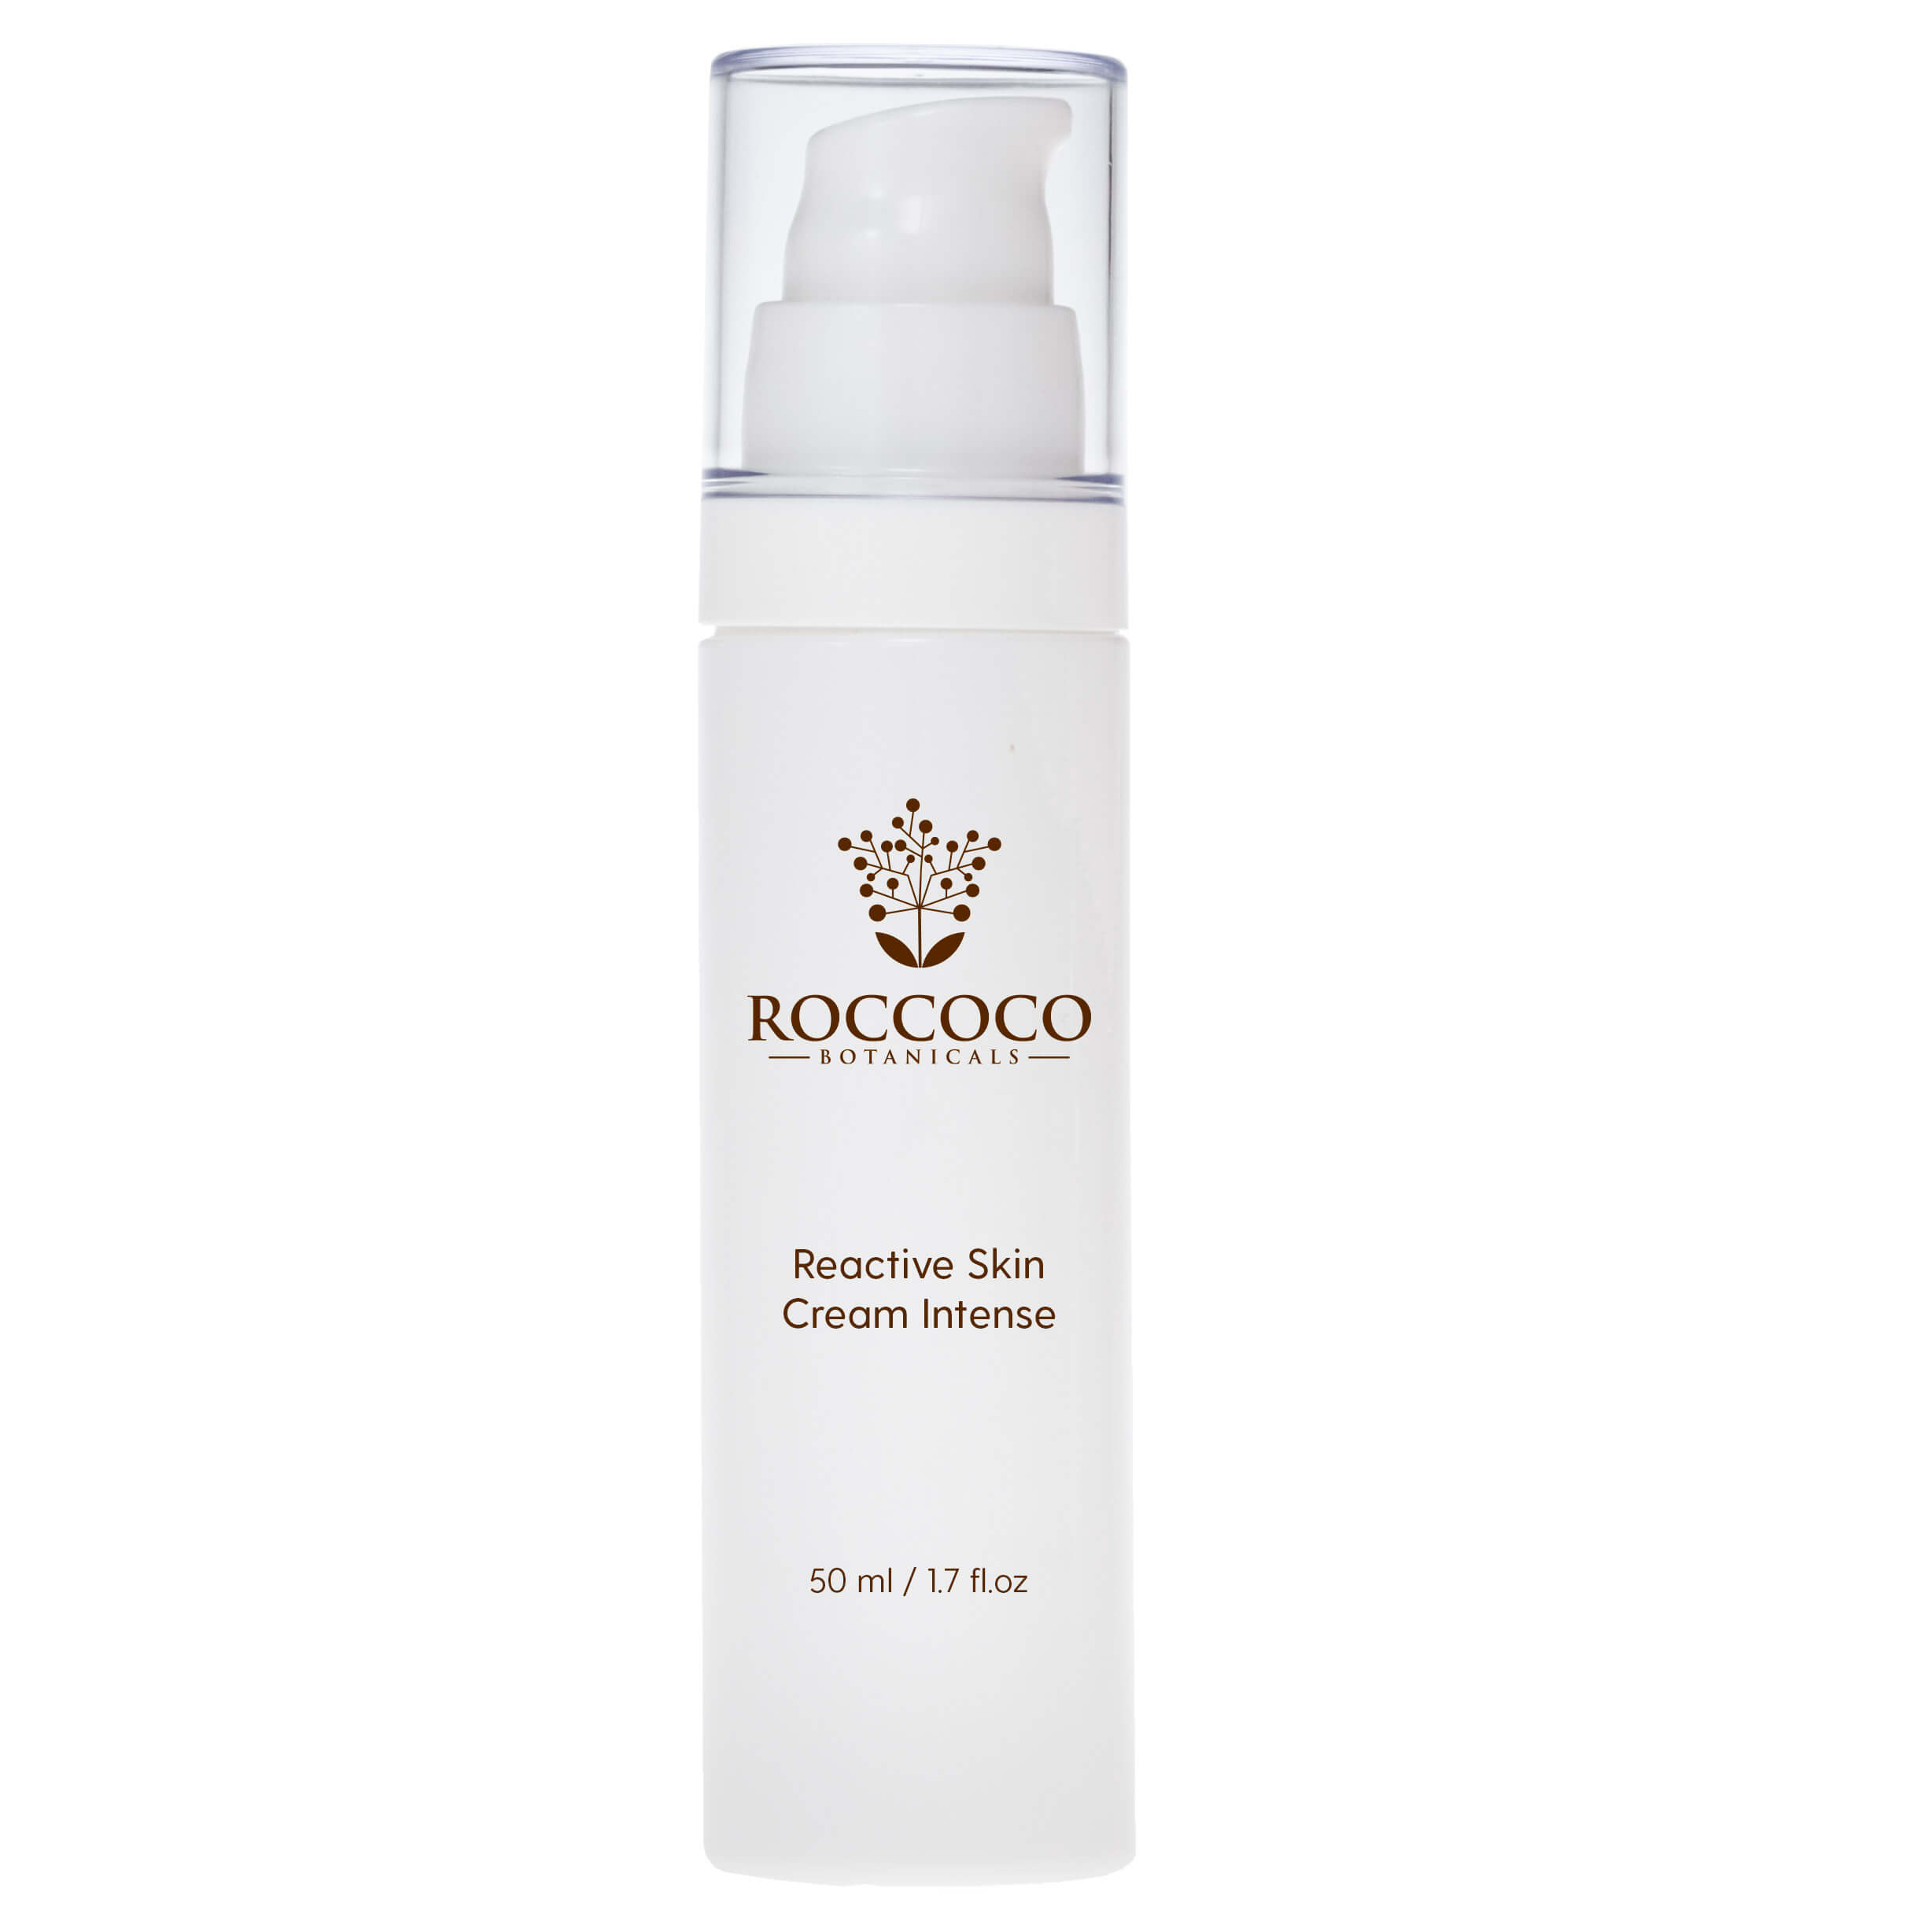 Roccoco reactive skin cream intense